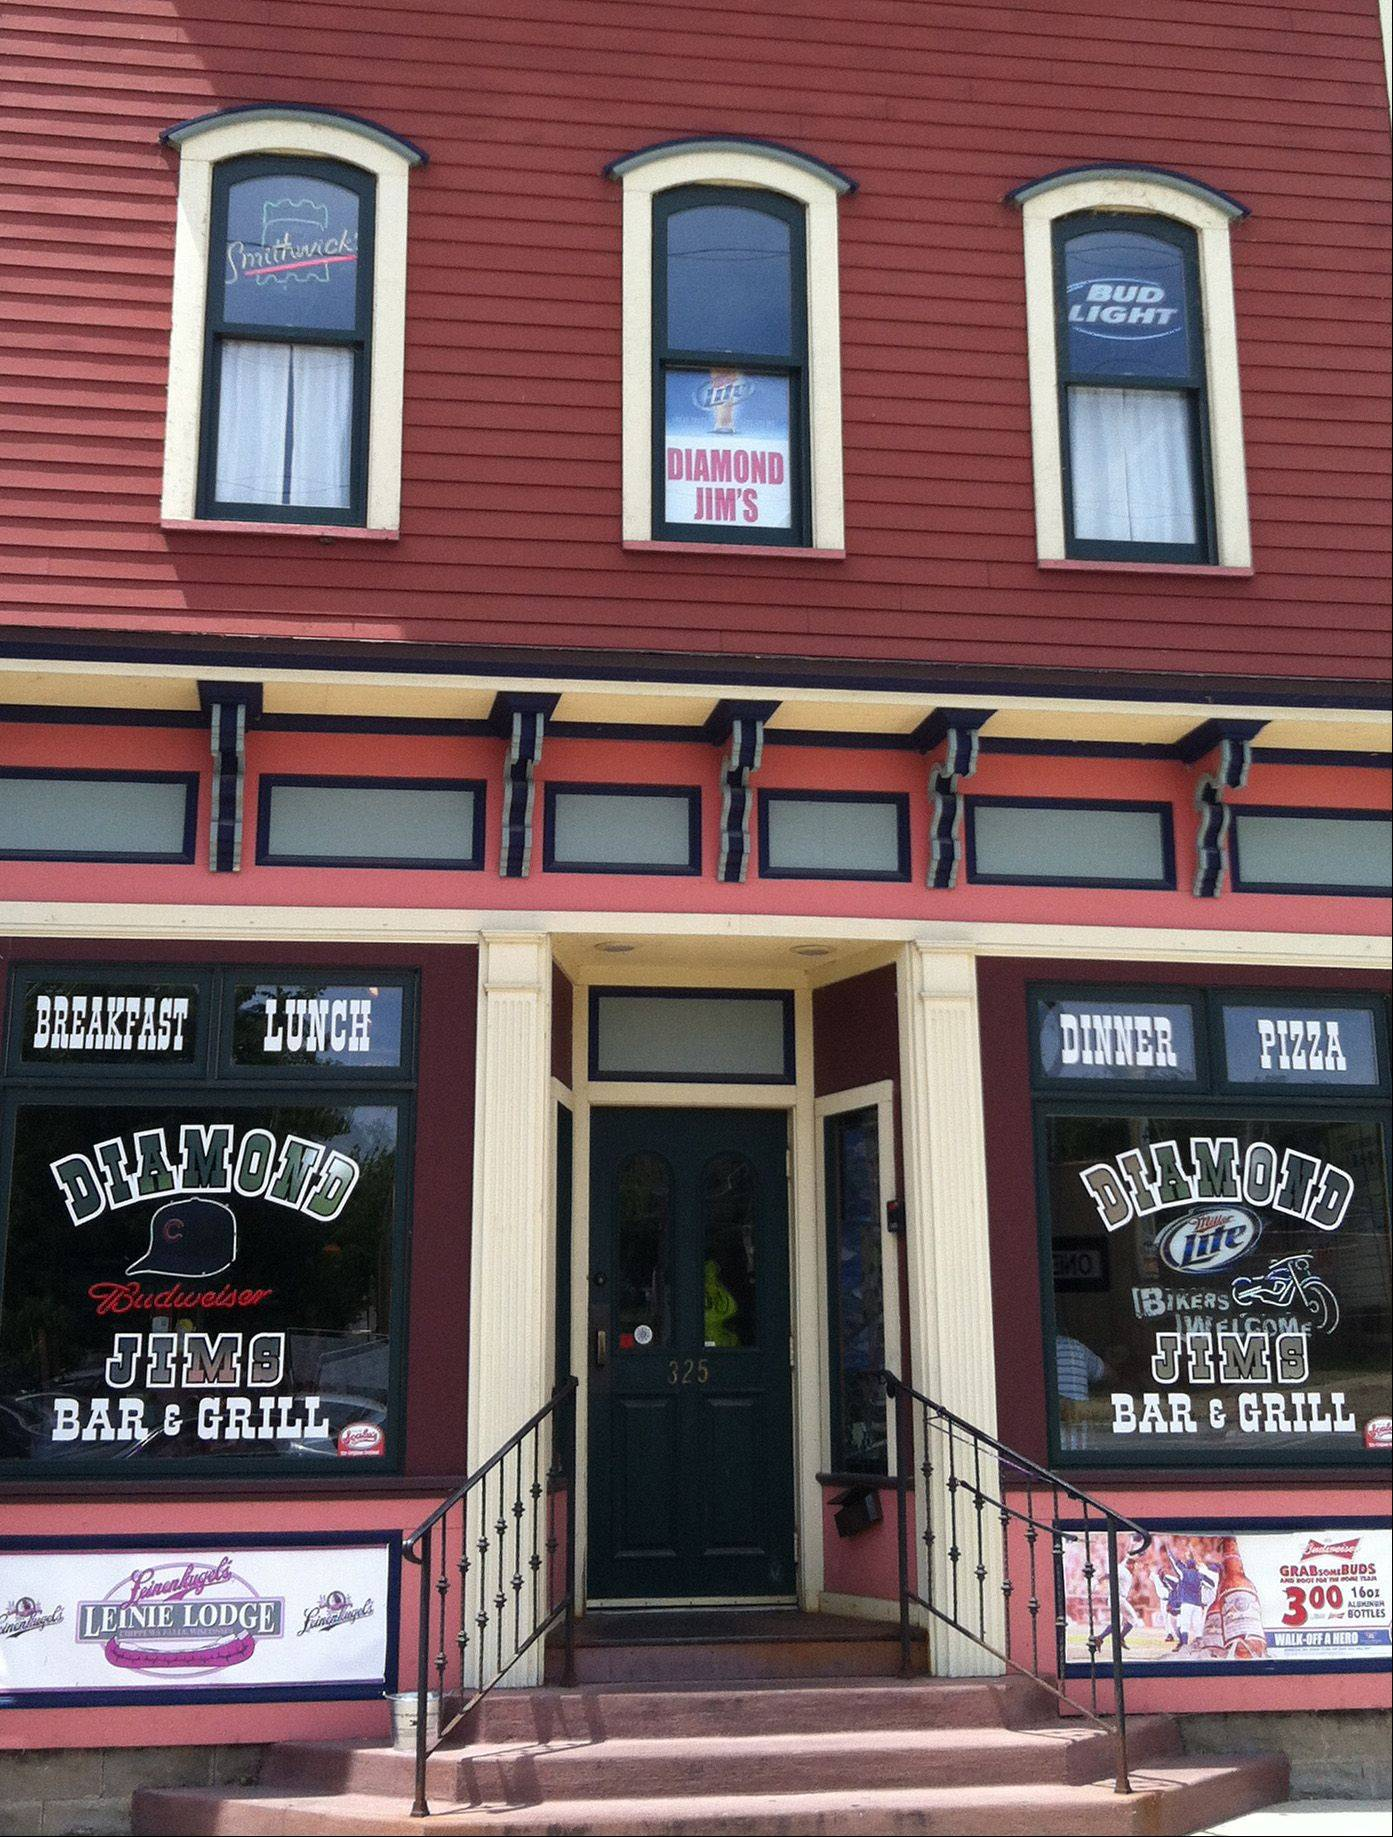 "If East Dundee trustees curtail hours that music can be played, Diamond Jim's Bar and Grill may leave the village for a town that offers later hours. ""If we can't do it here, if another town allows for later music, then that's an option, too,"" said Carl Mizak, one of the owners."